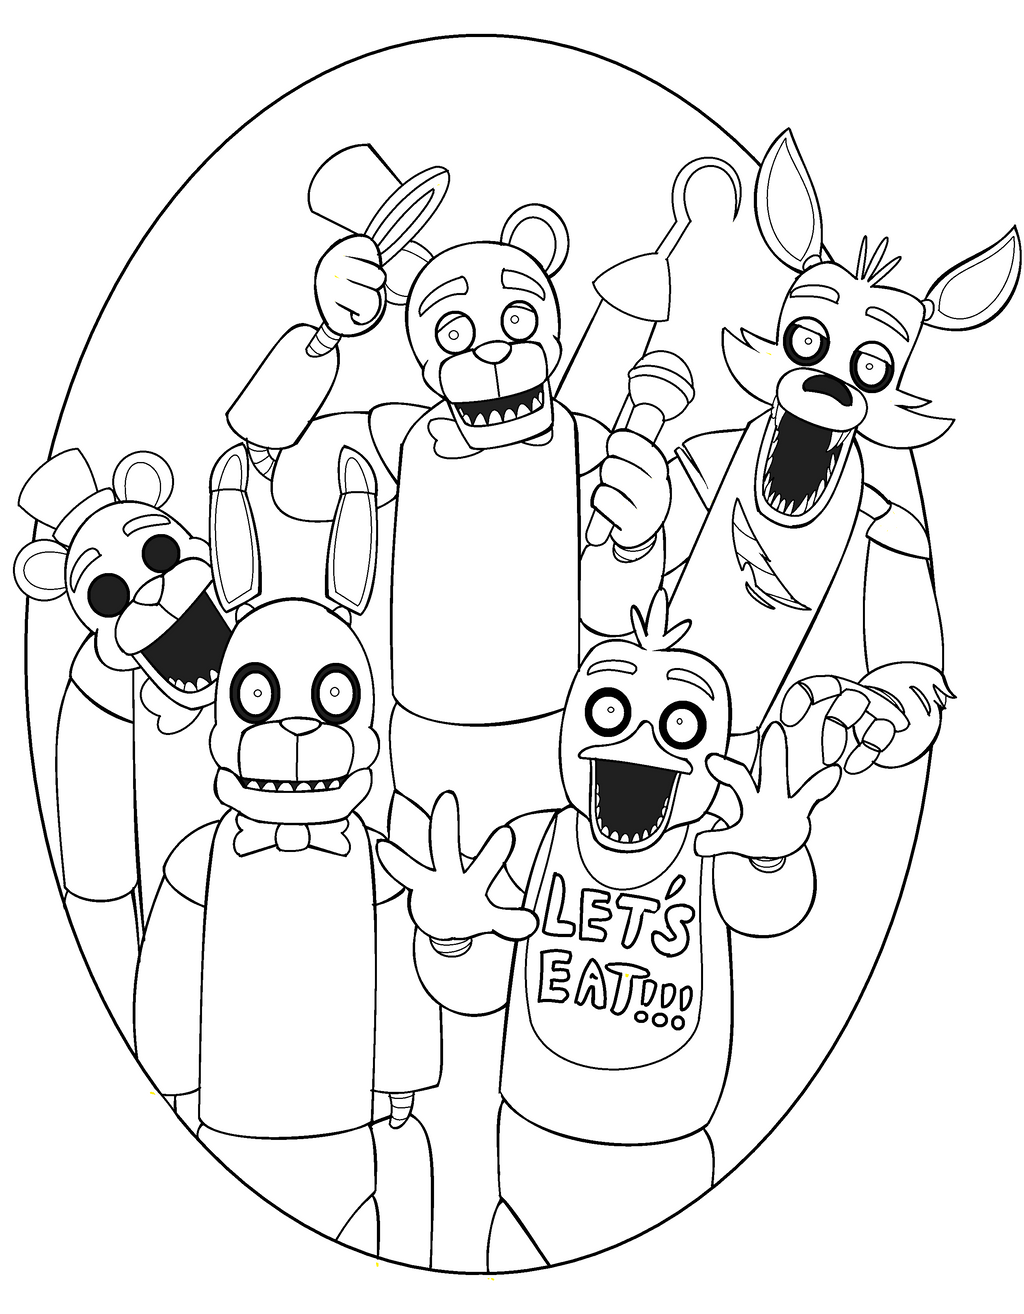 five nights of freddys coloring pages | Freddy Five Nights At Freddys - Free Colouring Pages